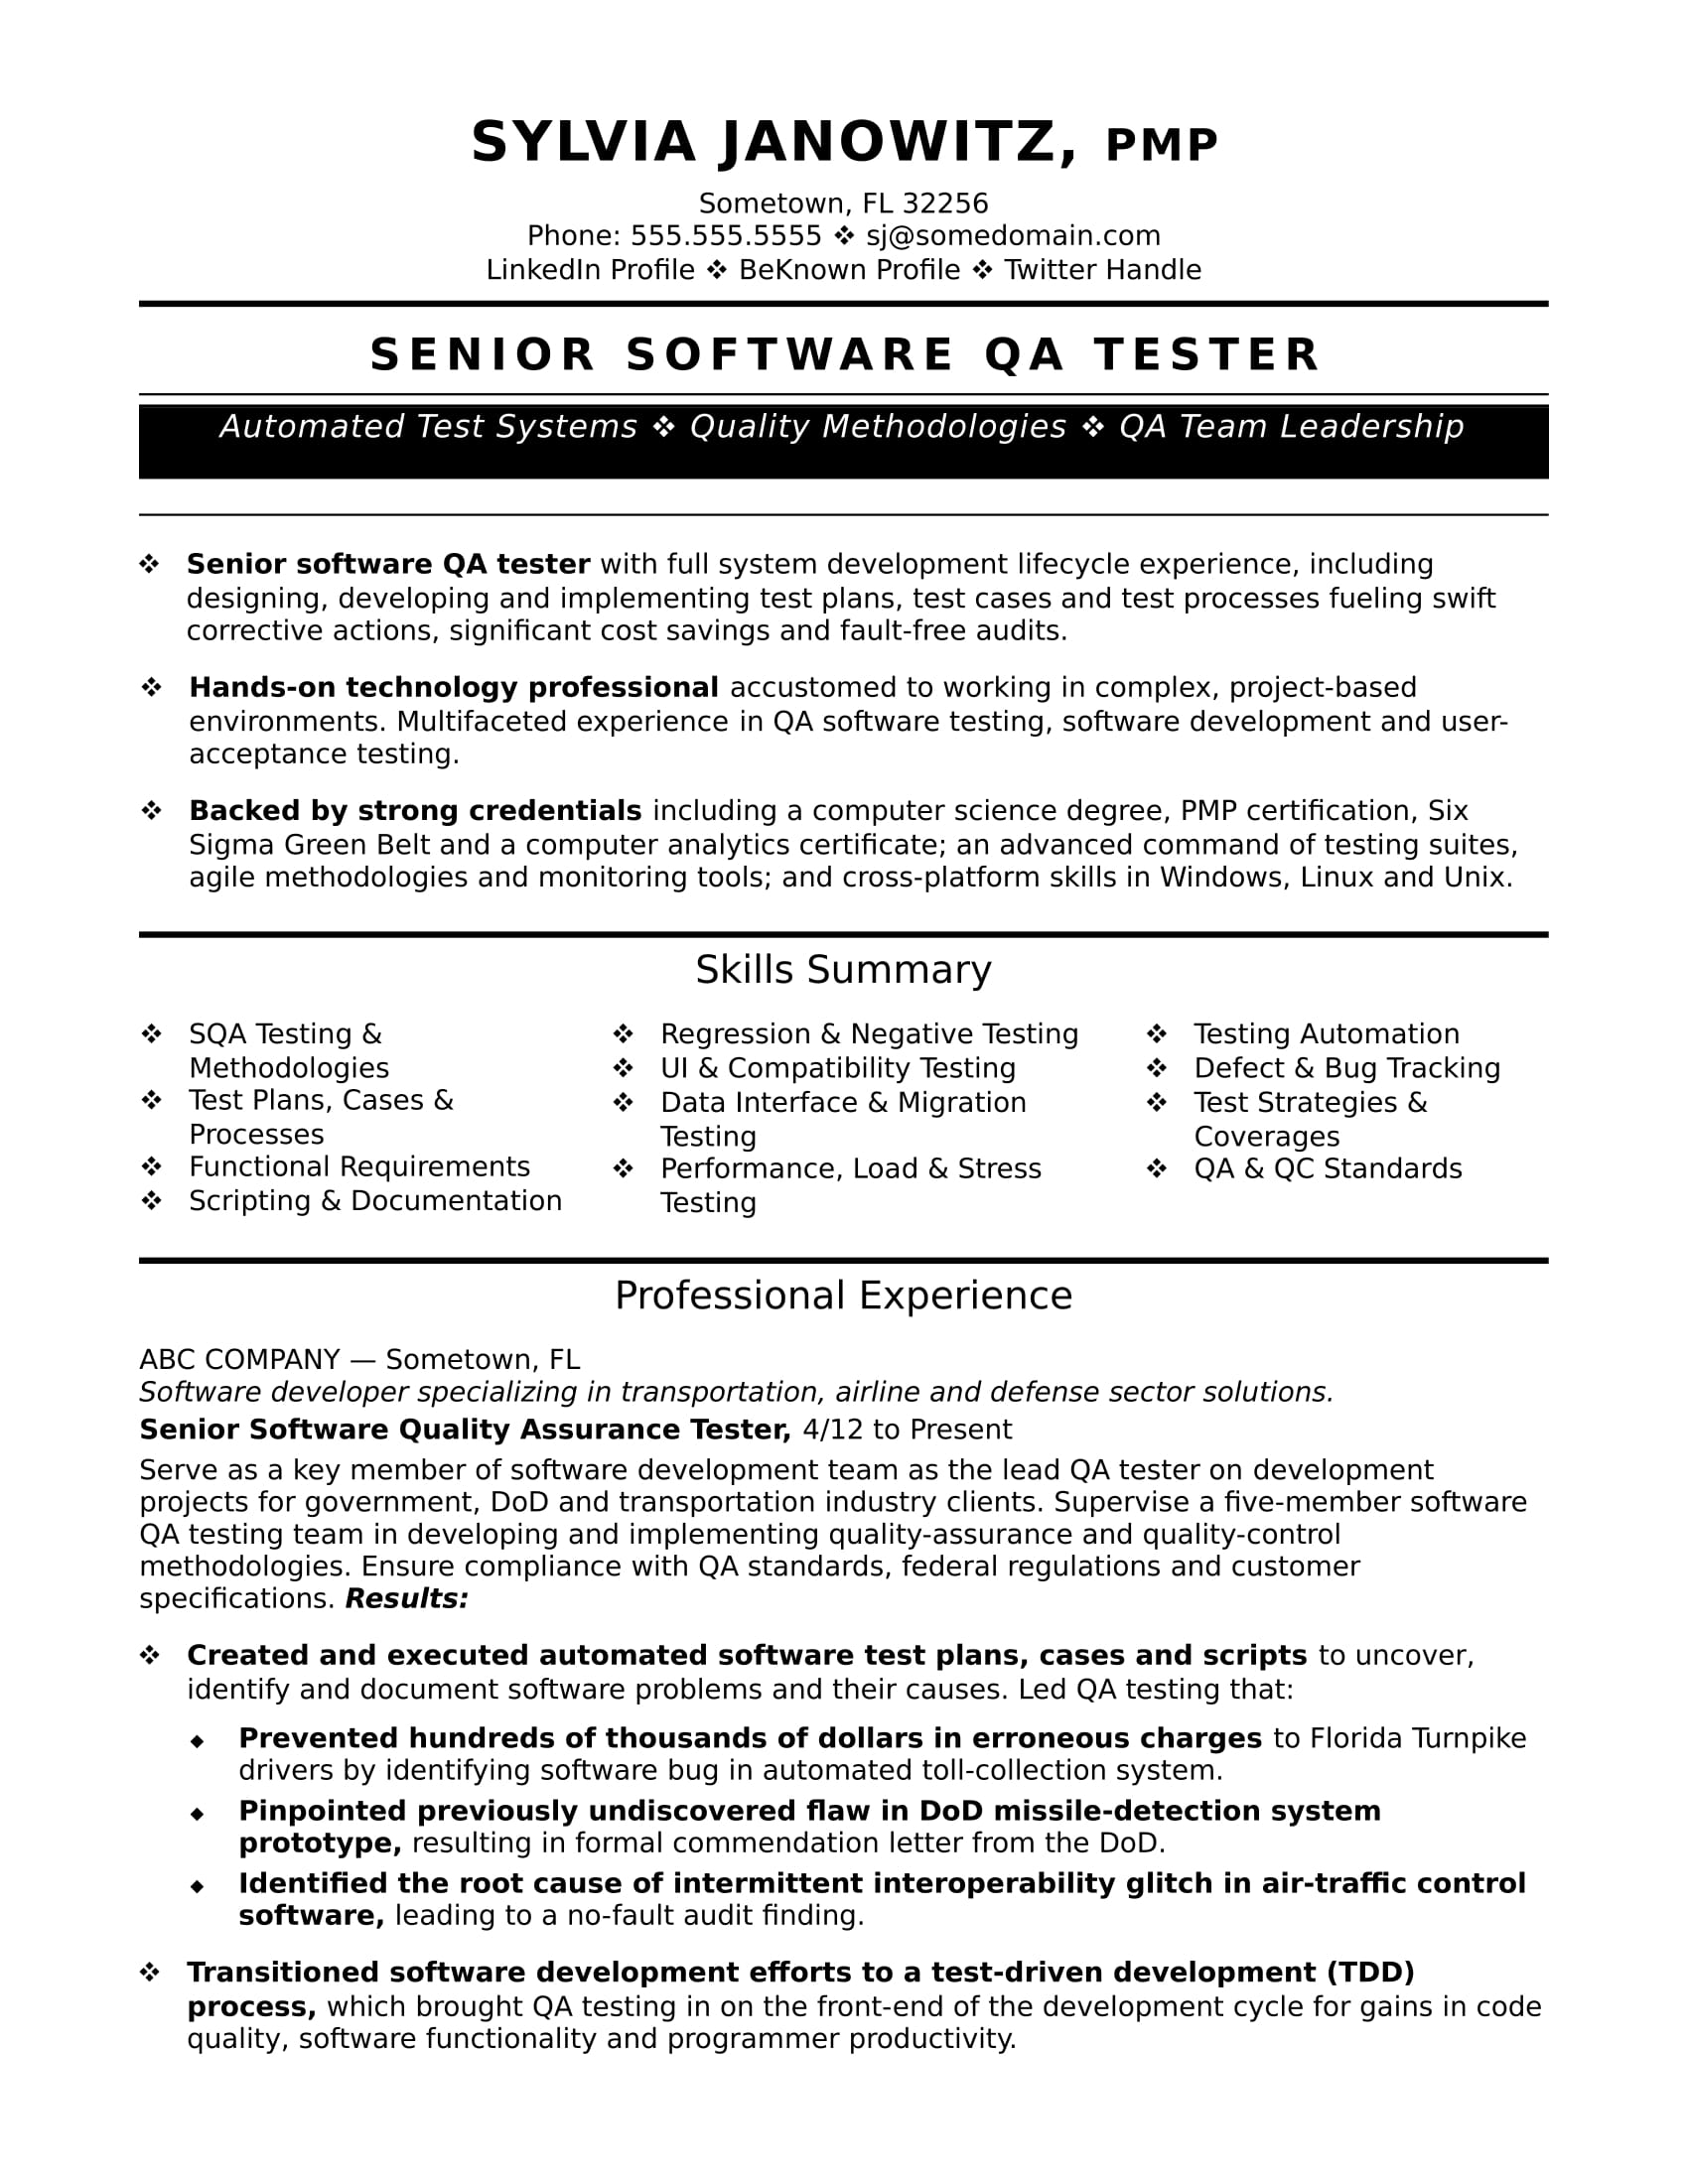 experienced qa software tester resume sample monster quality assurance experience medical Resume Quality Assurance Experience Resume